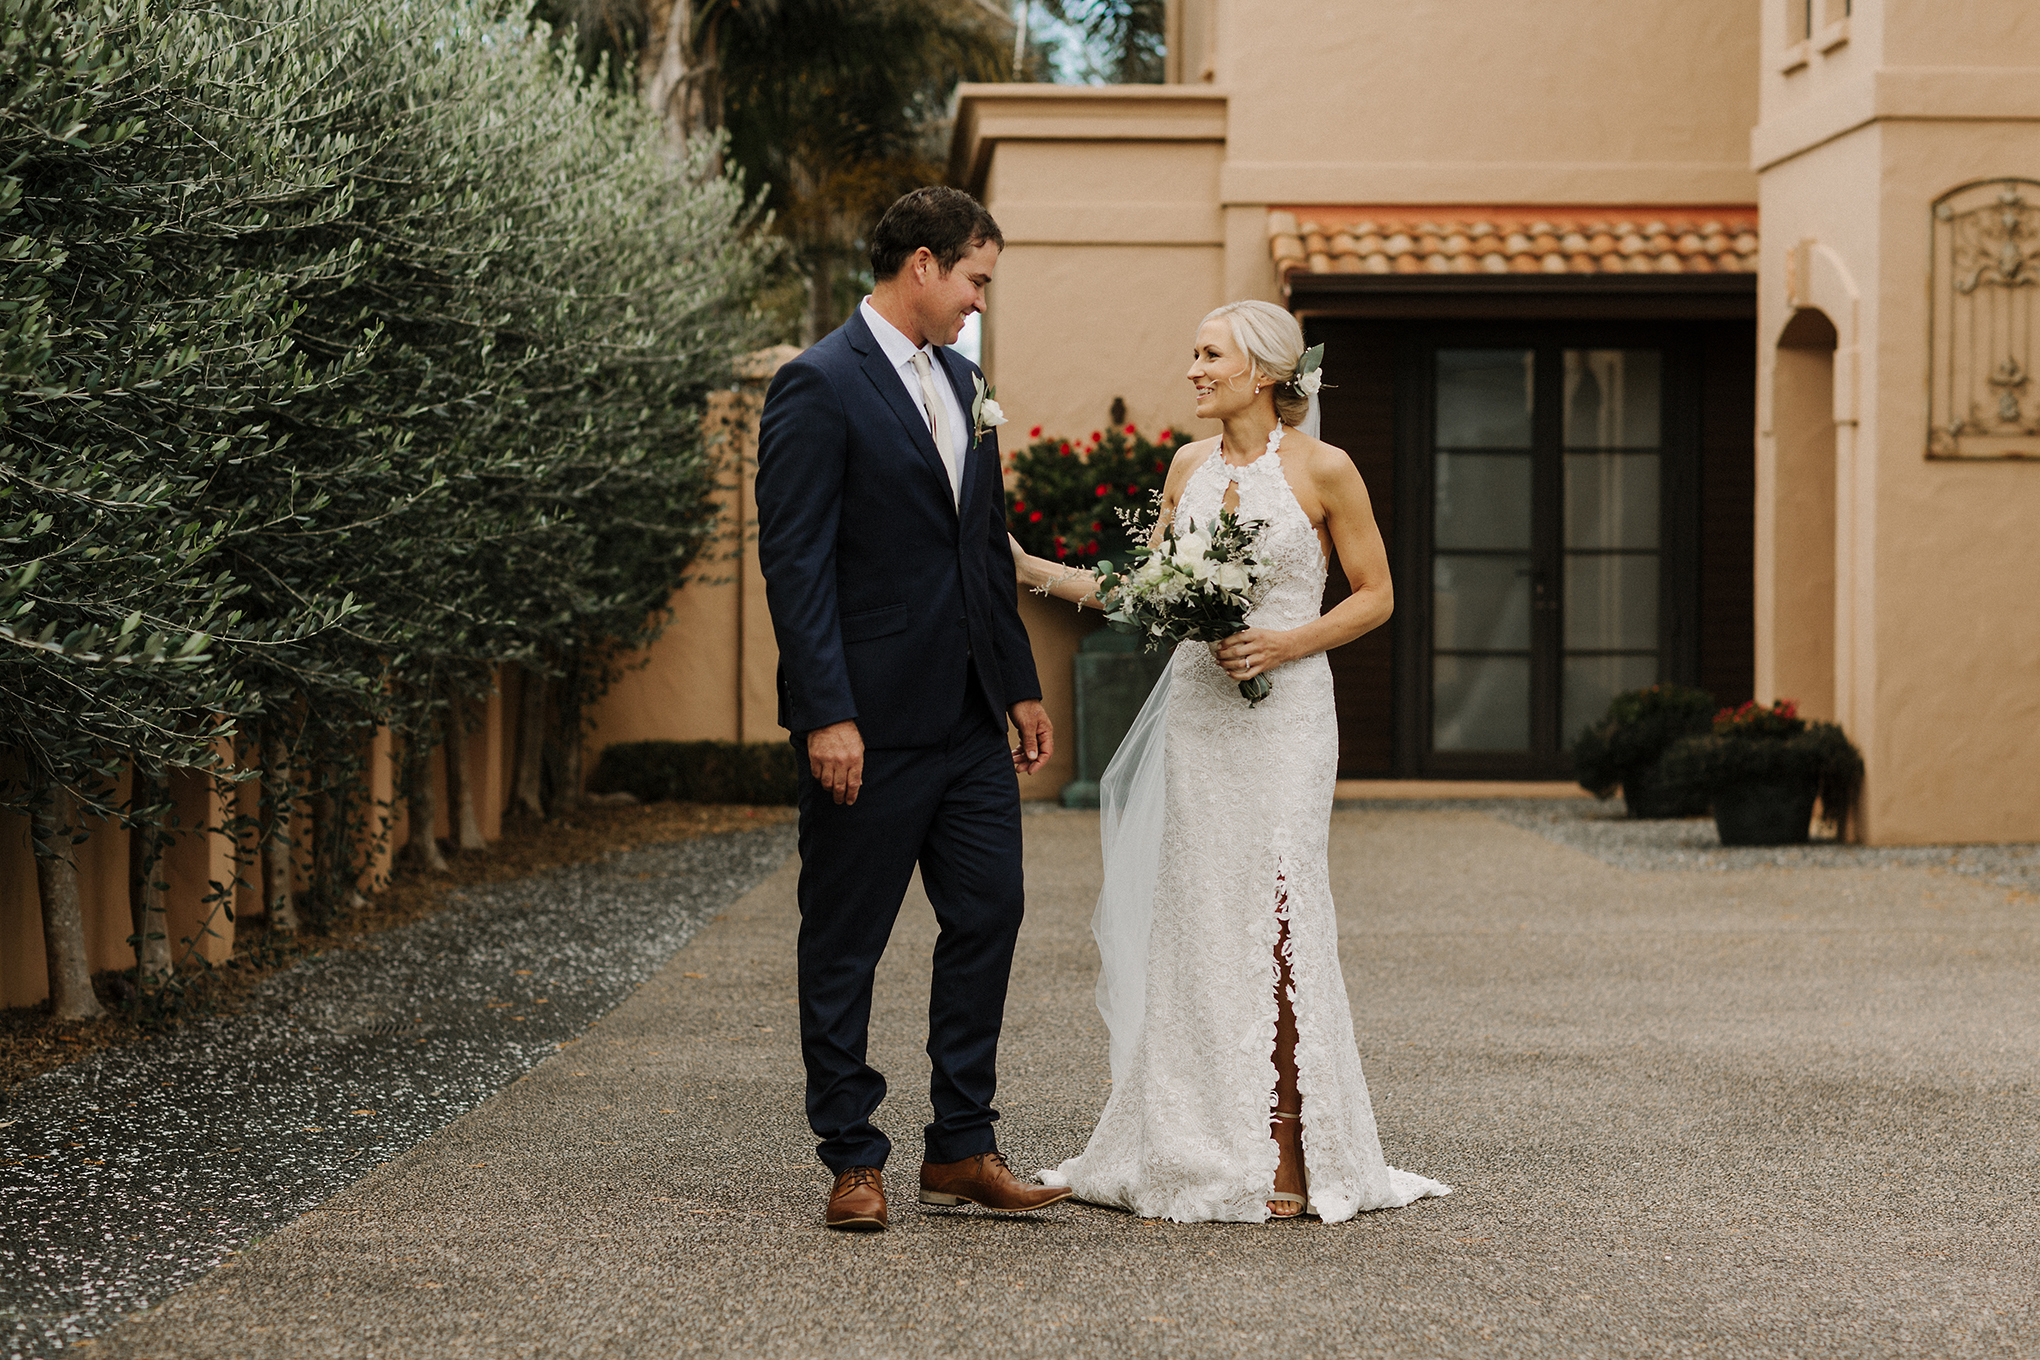 Categories: Weddings-Real Wedding: Alecia and Manu- Photography by Anne Paar